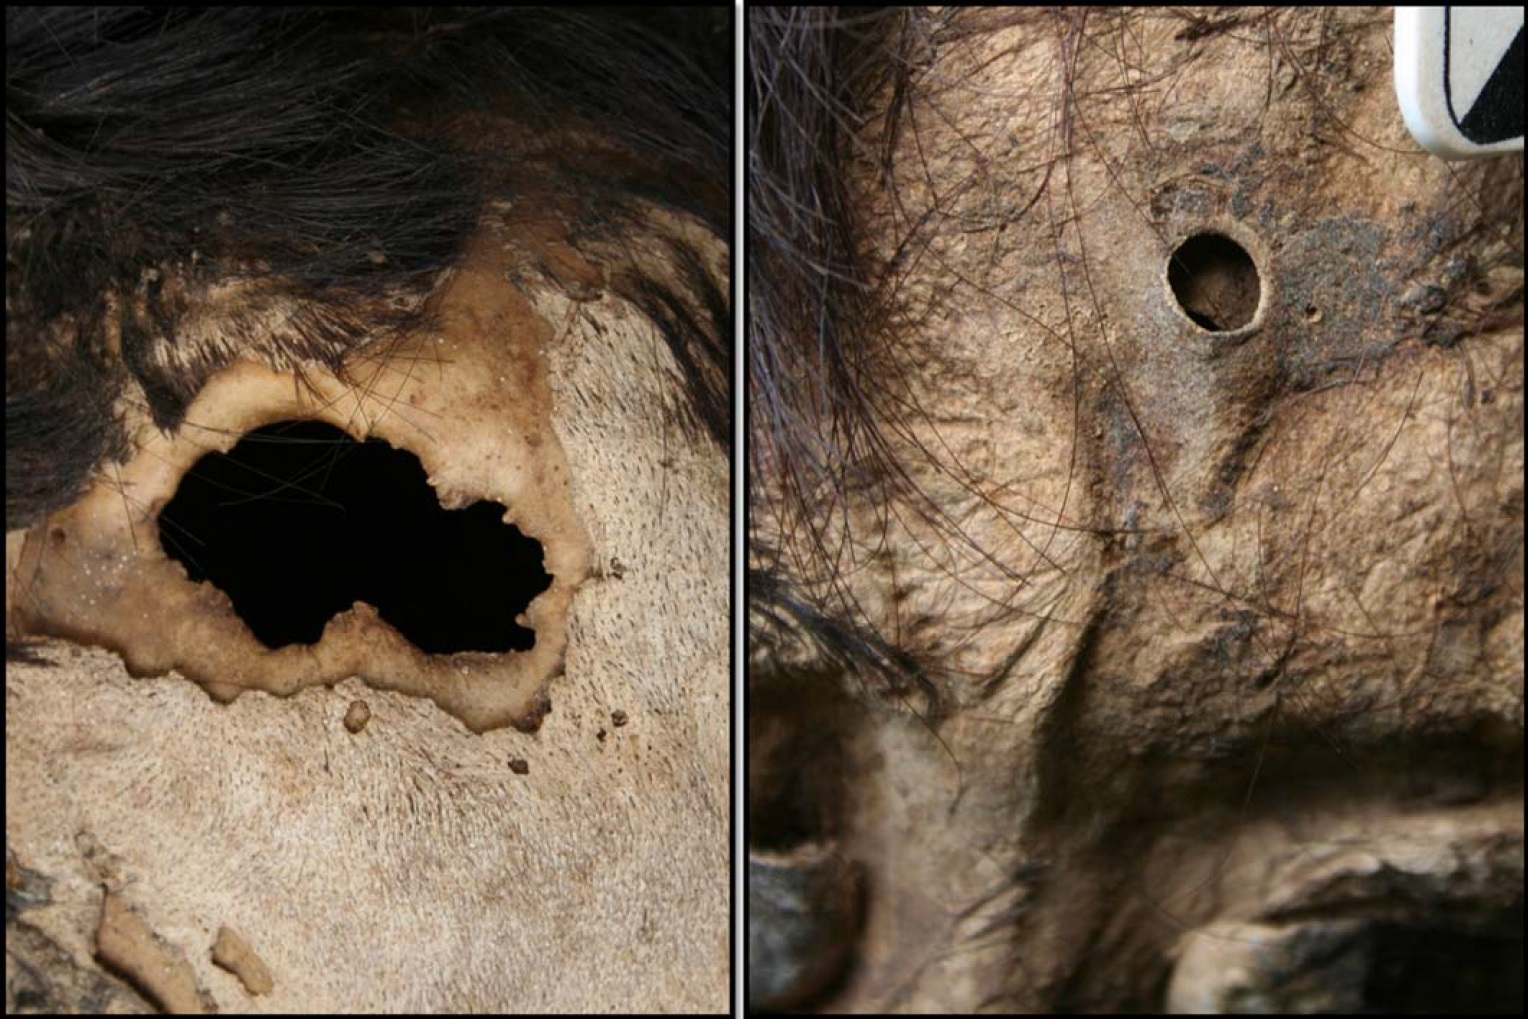 Blog Archive » Thousand-year-old trepanned skulls of the Andes